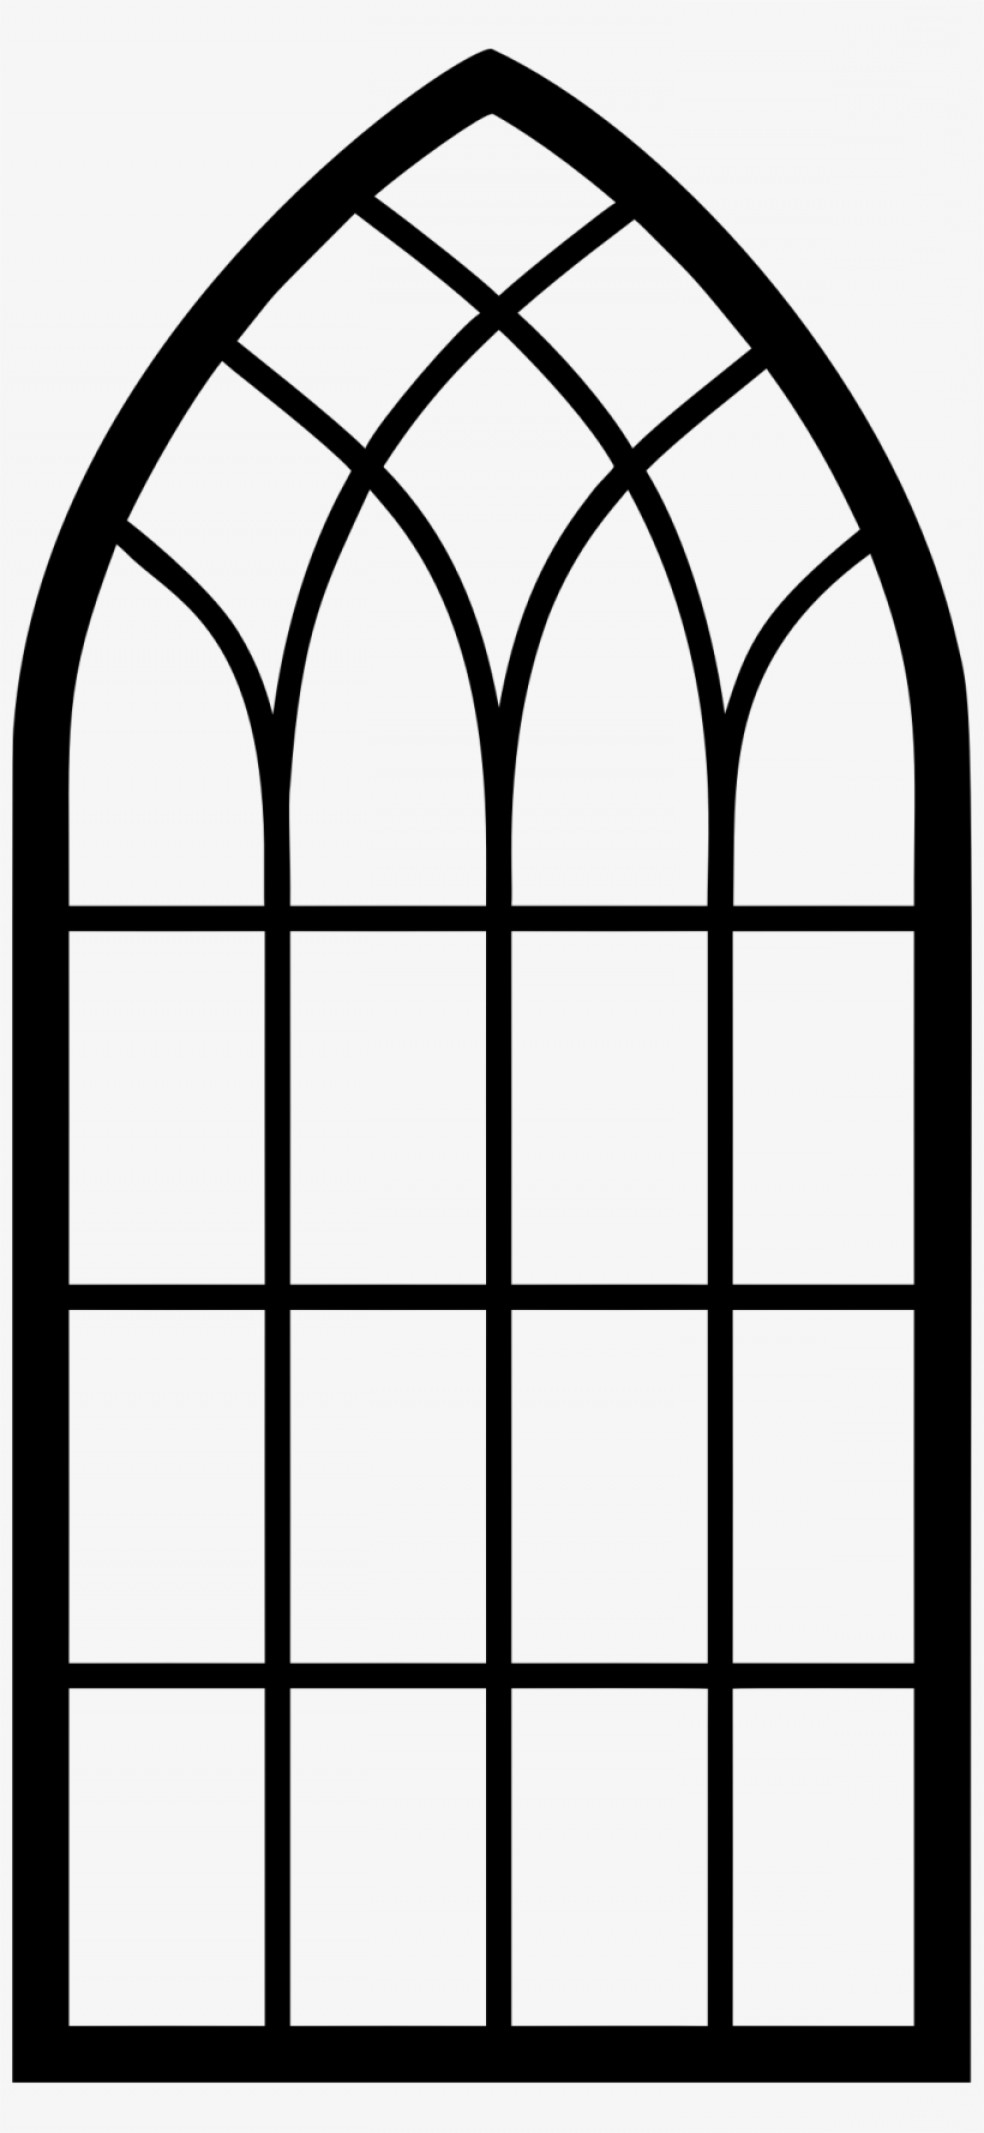 Uqattieqchurch Window Arch Window Clipart Silhouette.